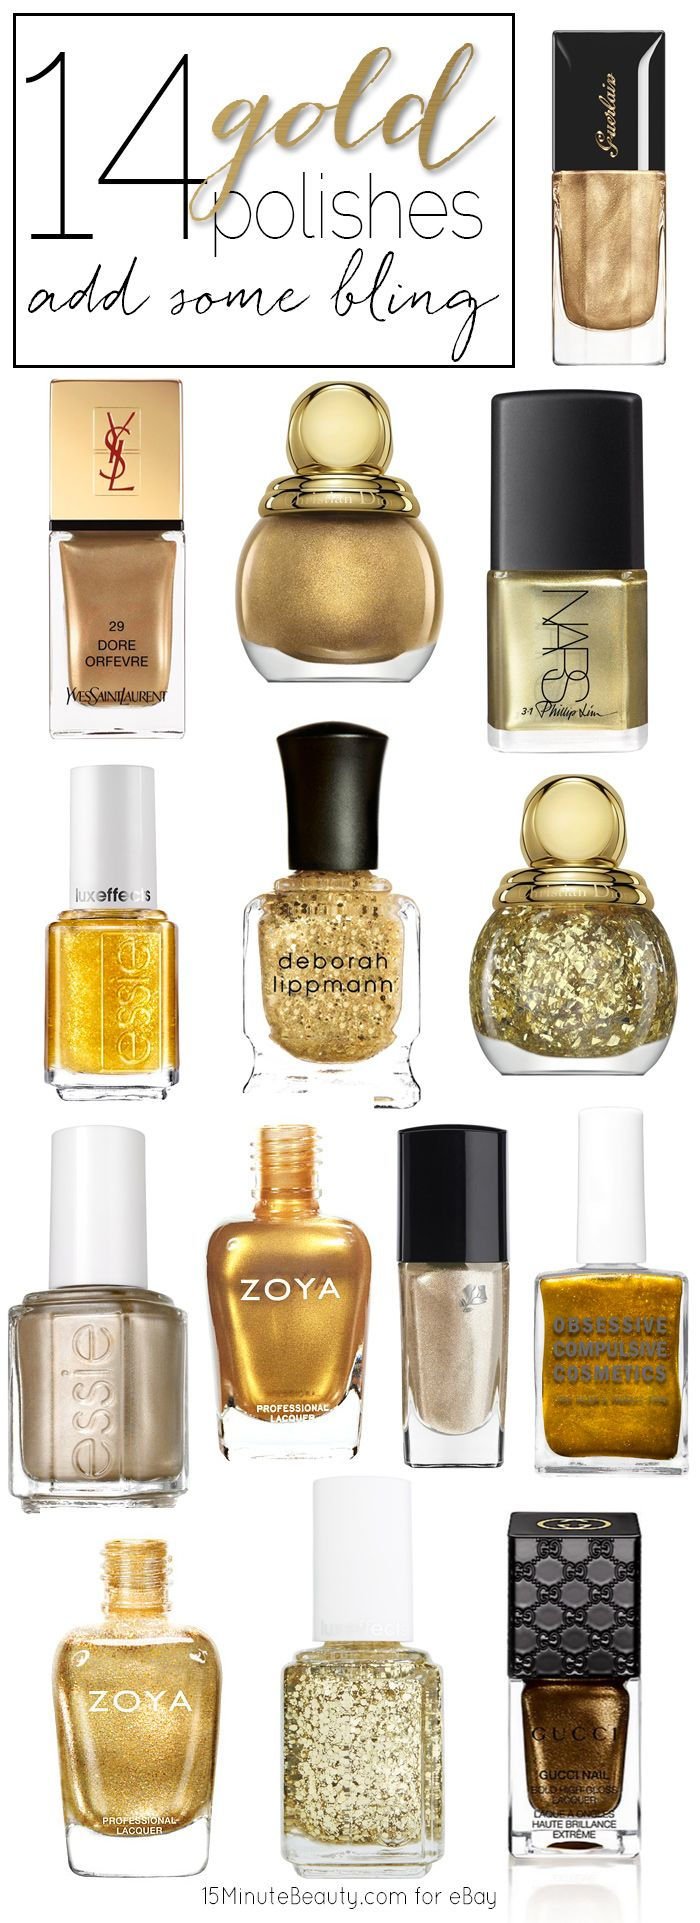 Great gold nail polishes!